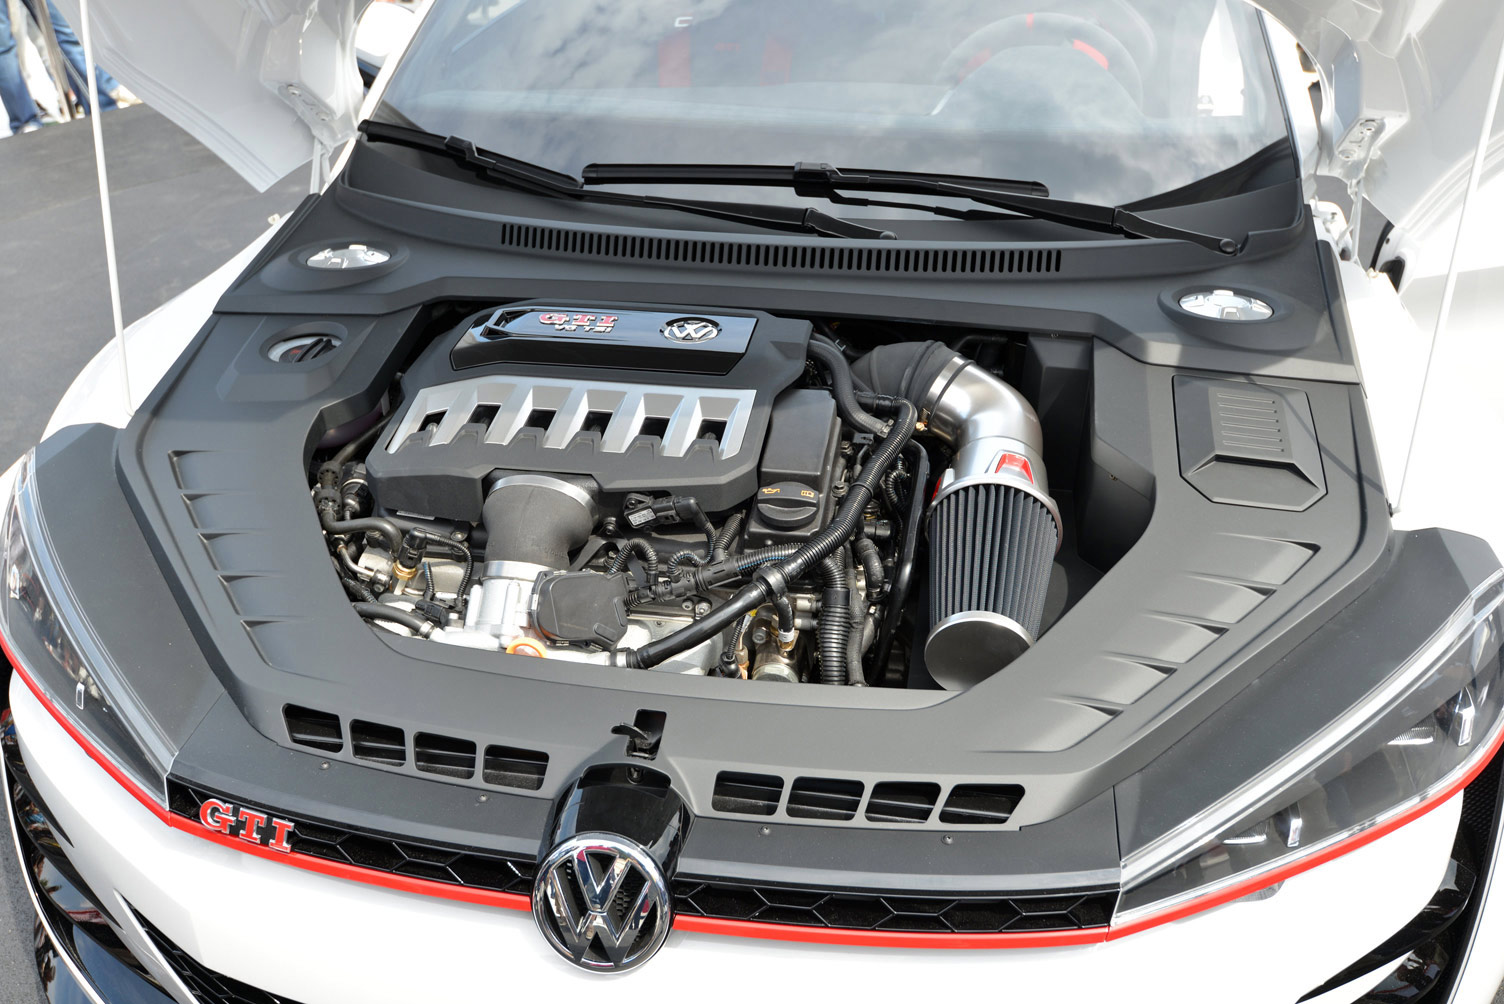 volkswagen-design-vision-gti-worthersee-054